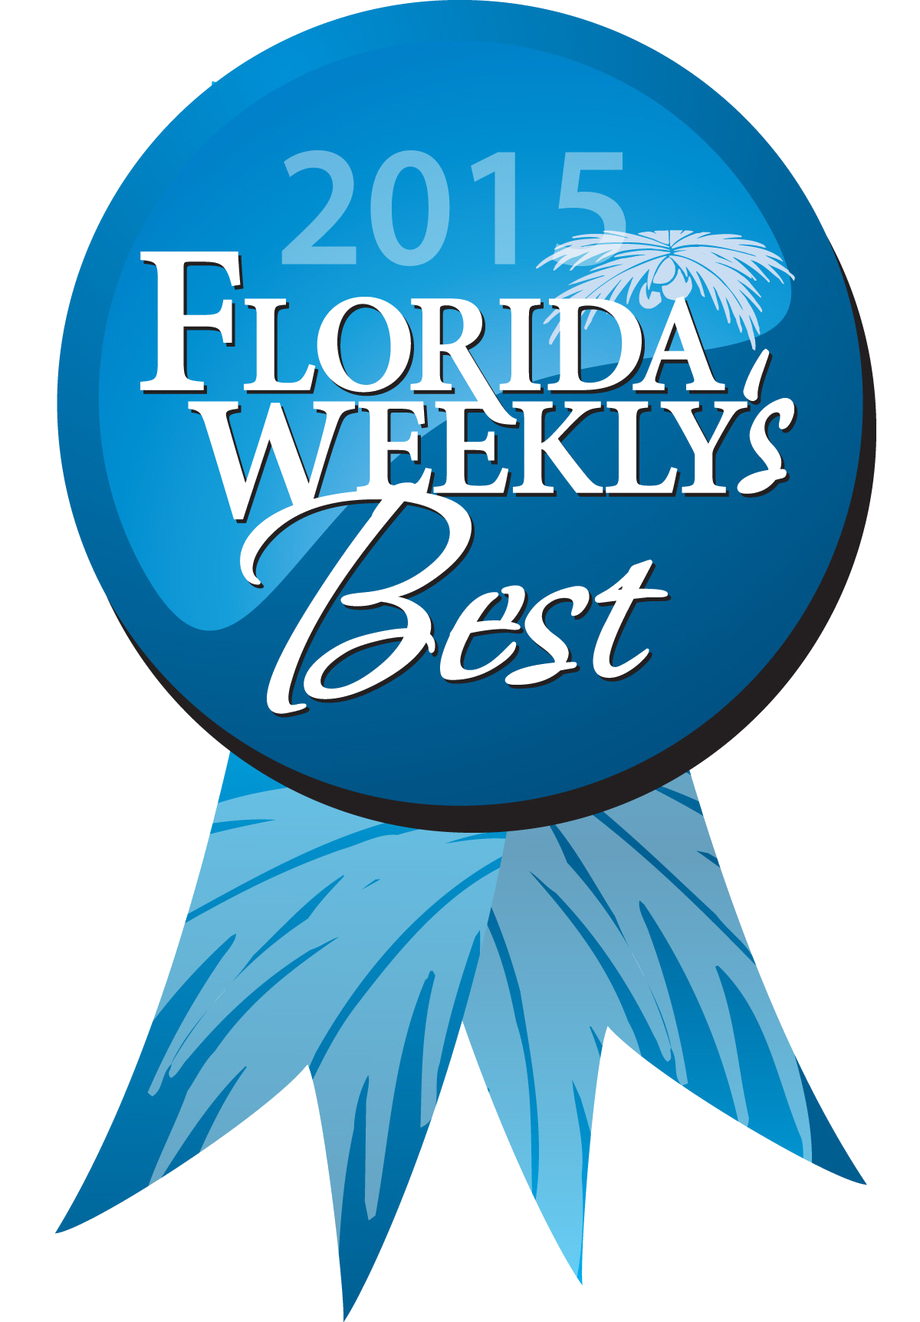 Ford Signature Dentistry was named the Best Signature Smile in Fort Myers, Florida by Florida Weekly in 2015!